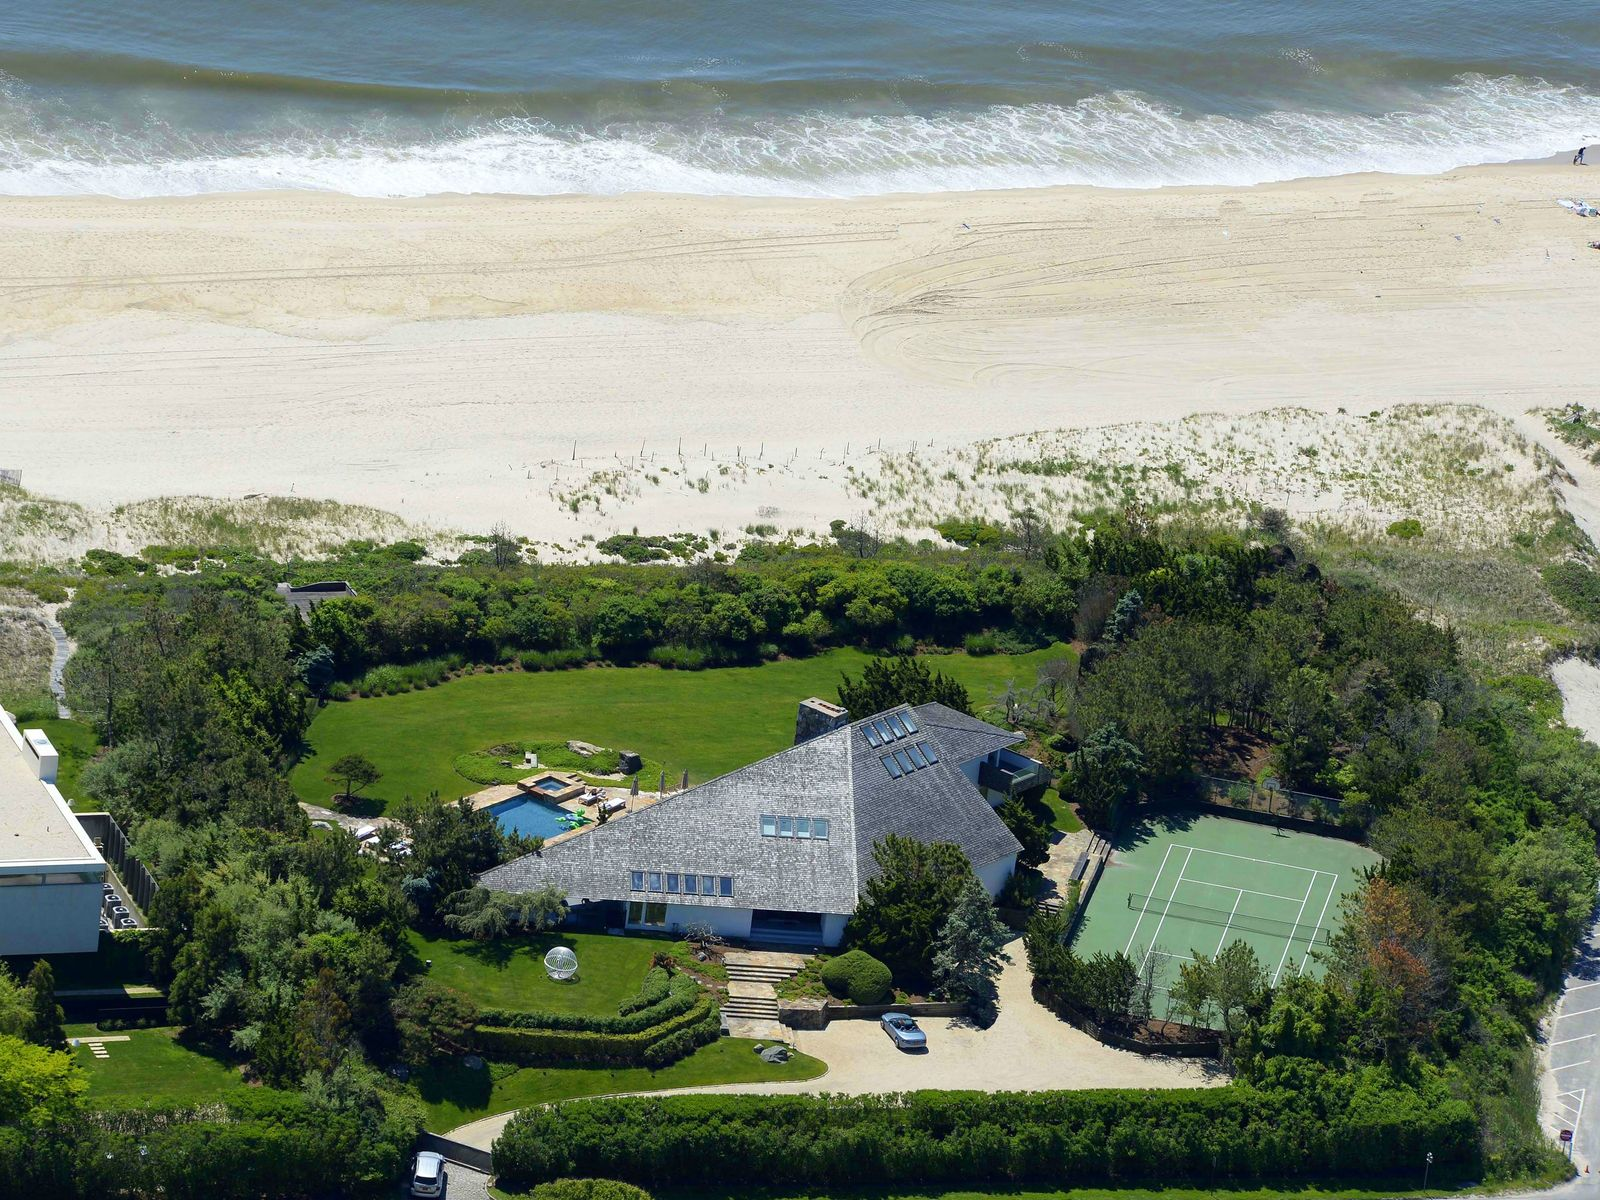 Estate Section Oceanfront, Southampton NY Single Family Home - Hamptons Real Estate